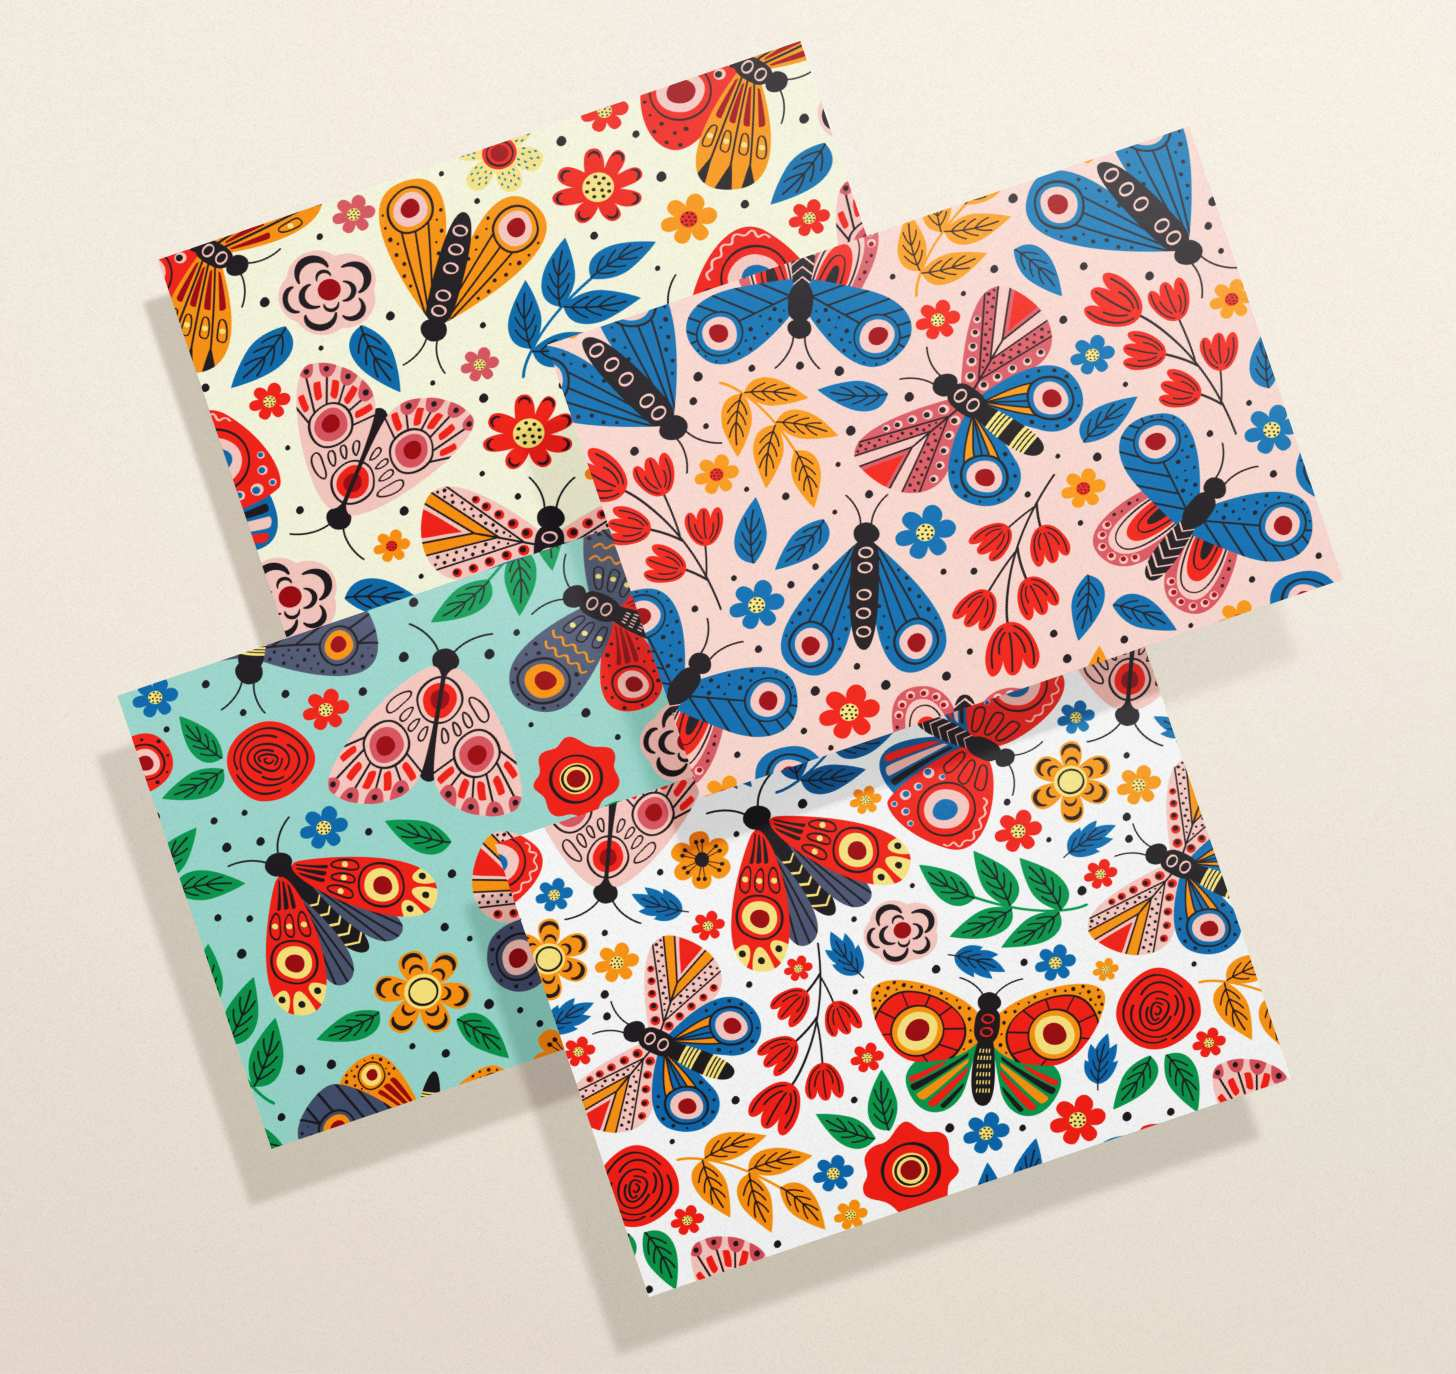 Four overlapping assorted multicolored butterfly cards with blue, pink, yellow, and white designs